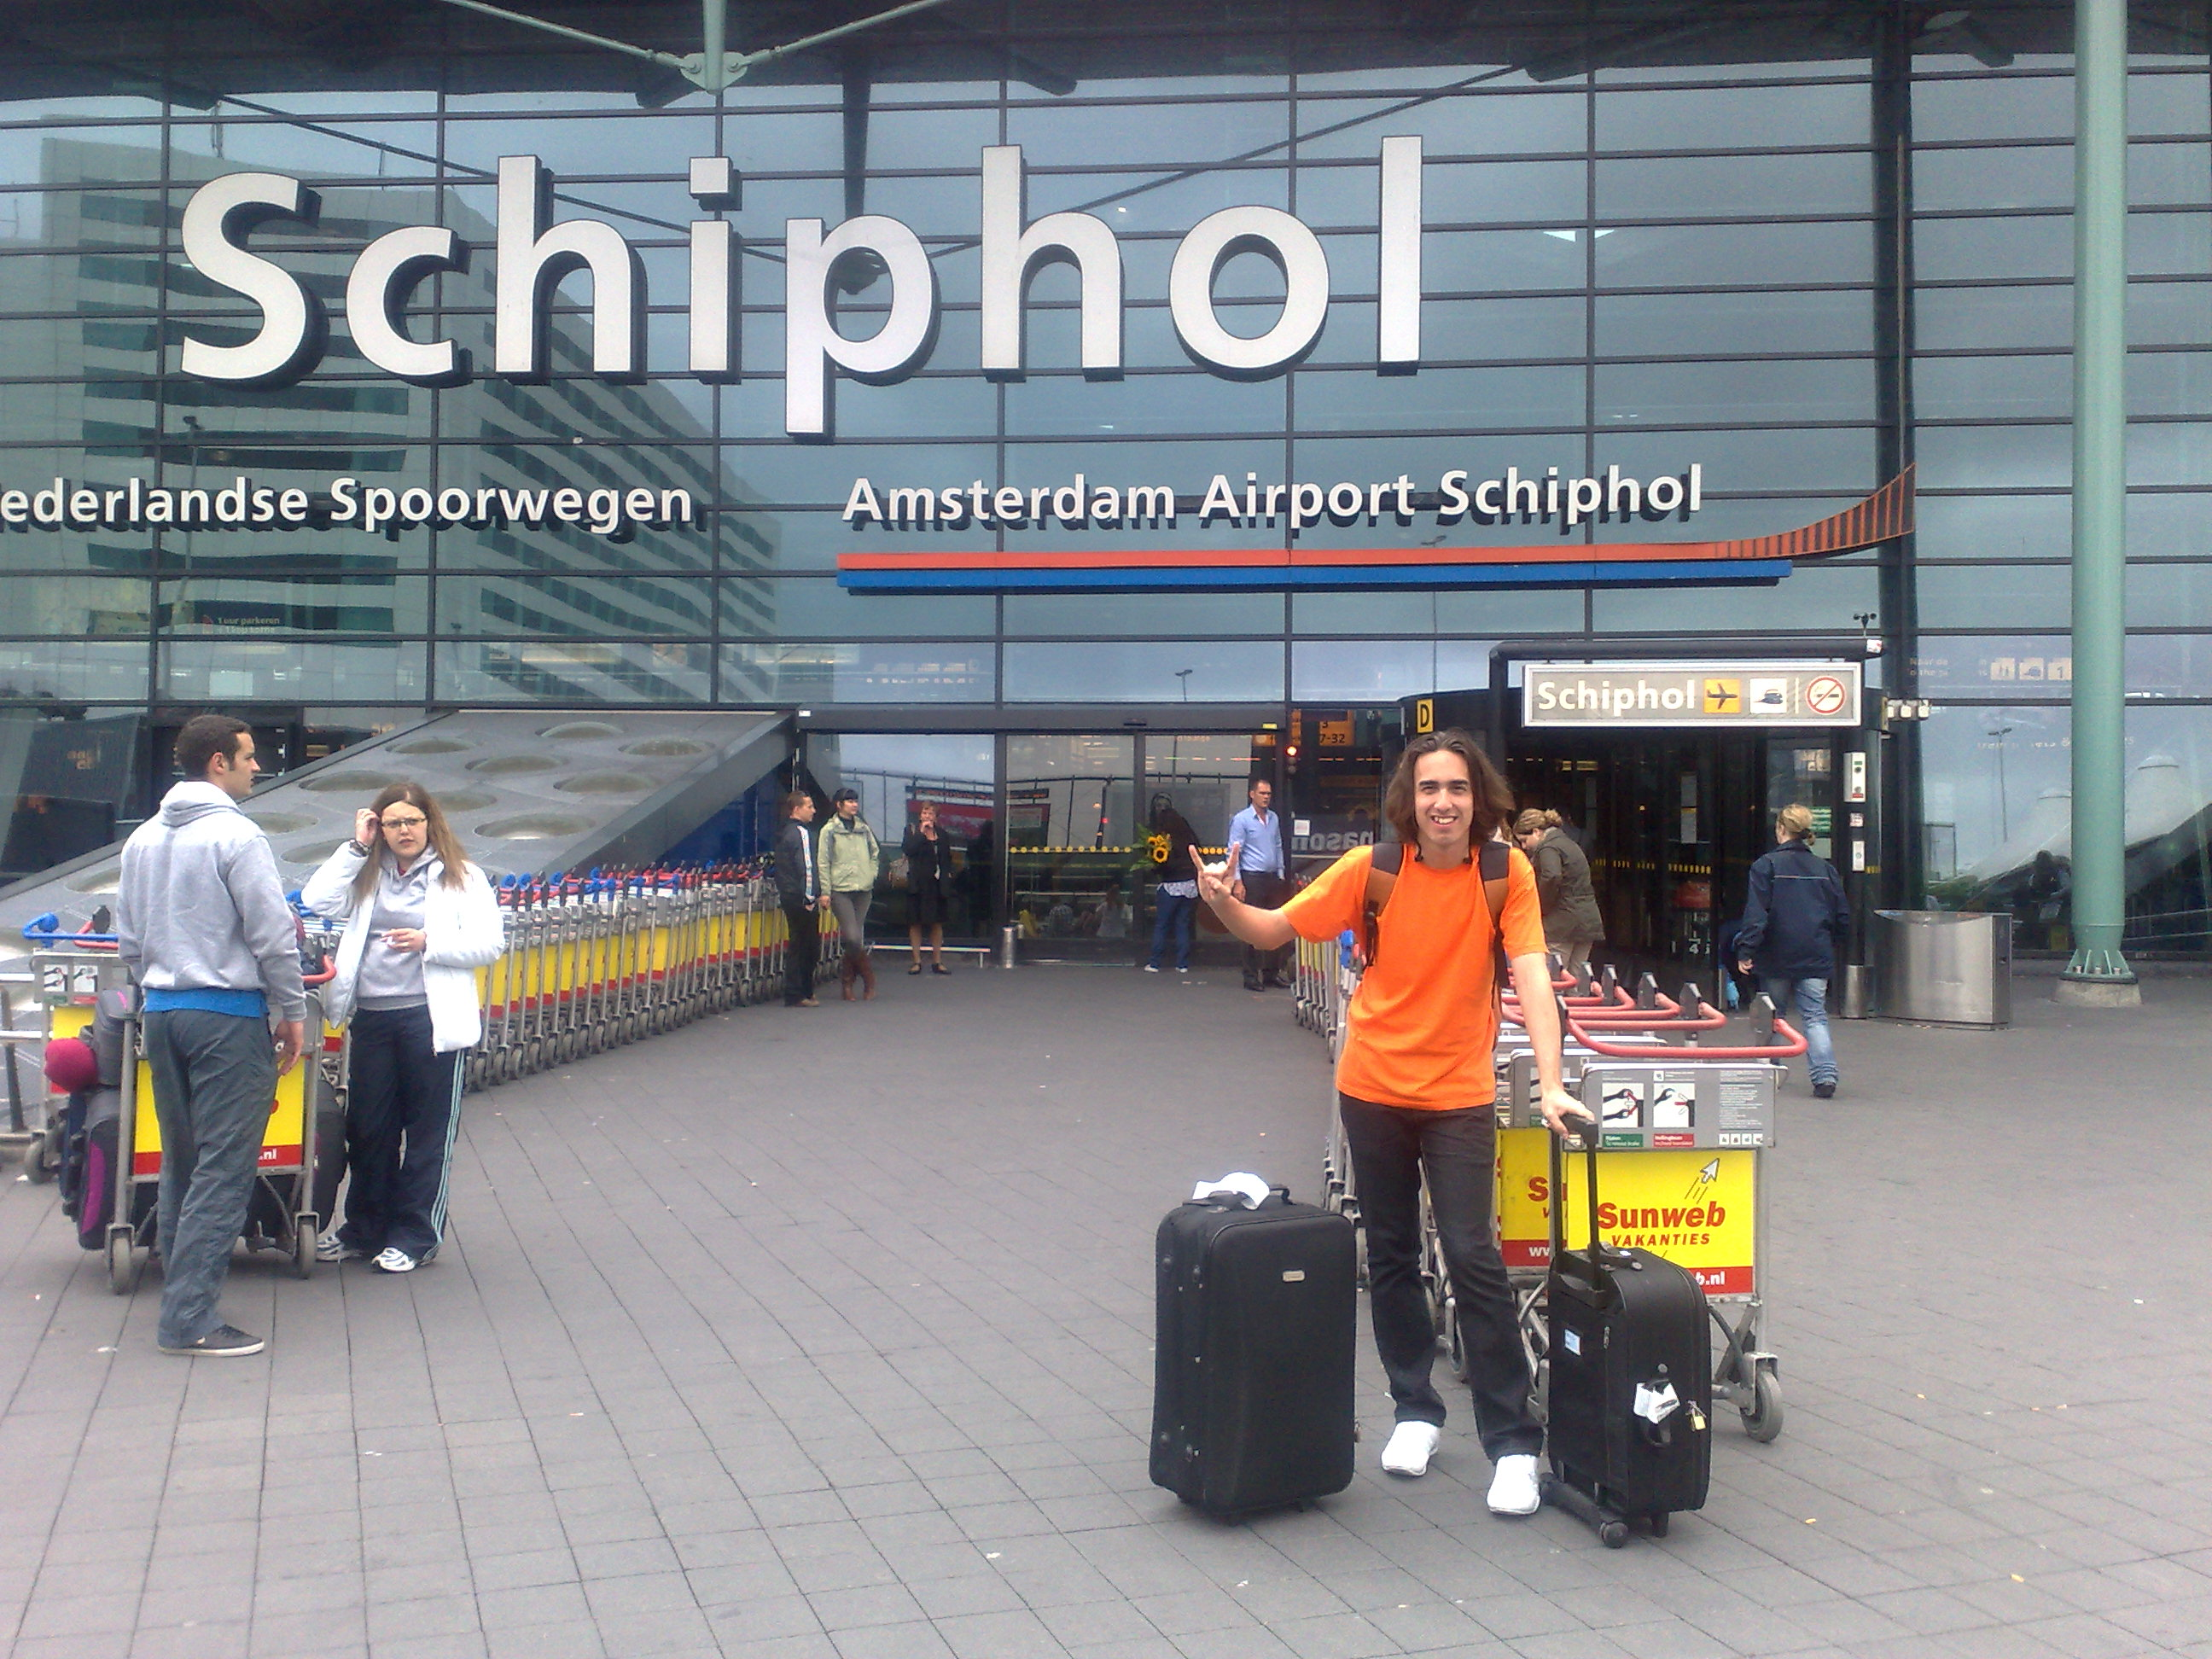 International Airport Schiphol Amsterdam - Target reached!